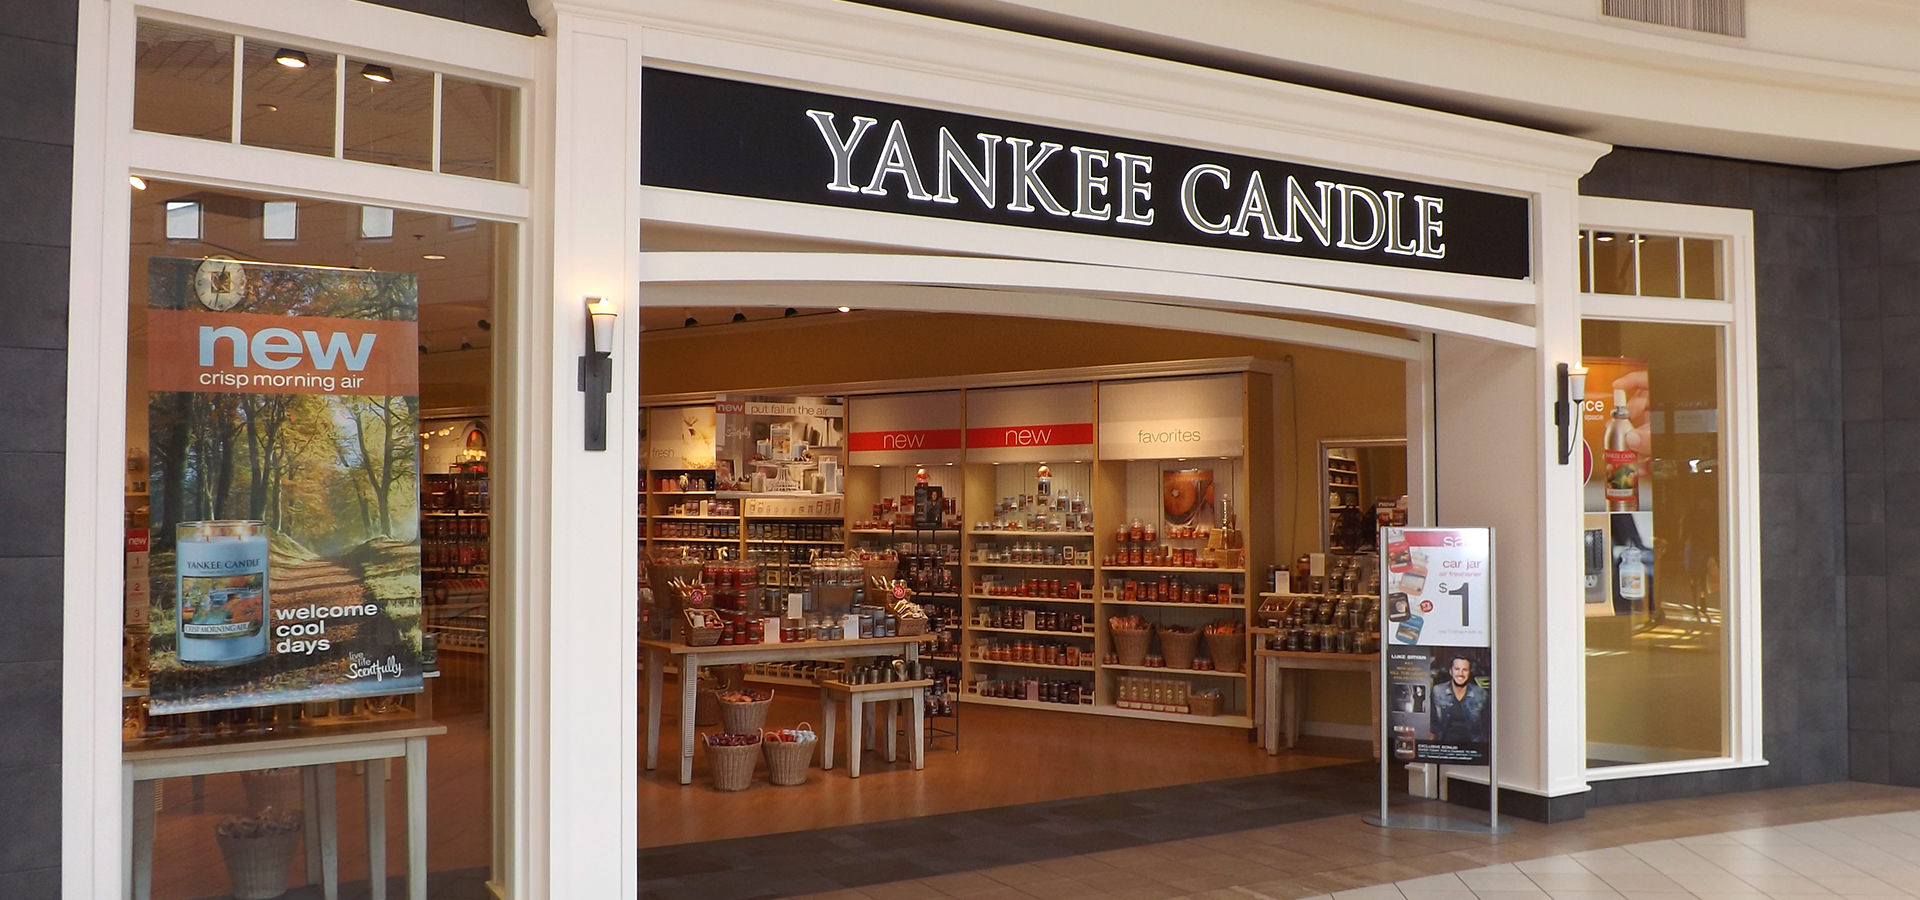 Yankee Candle in Dulles, VA | Dulles Town Center